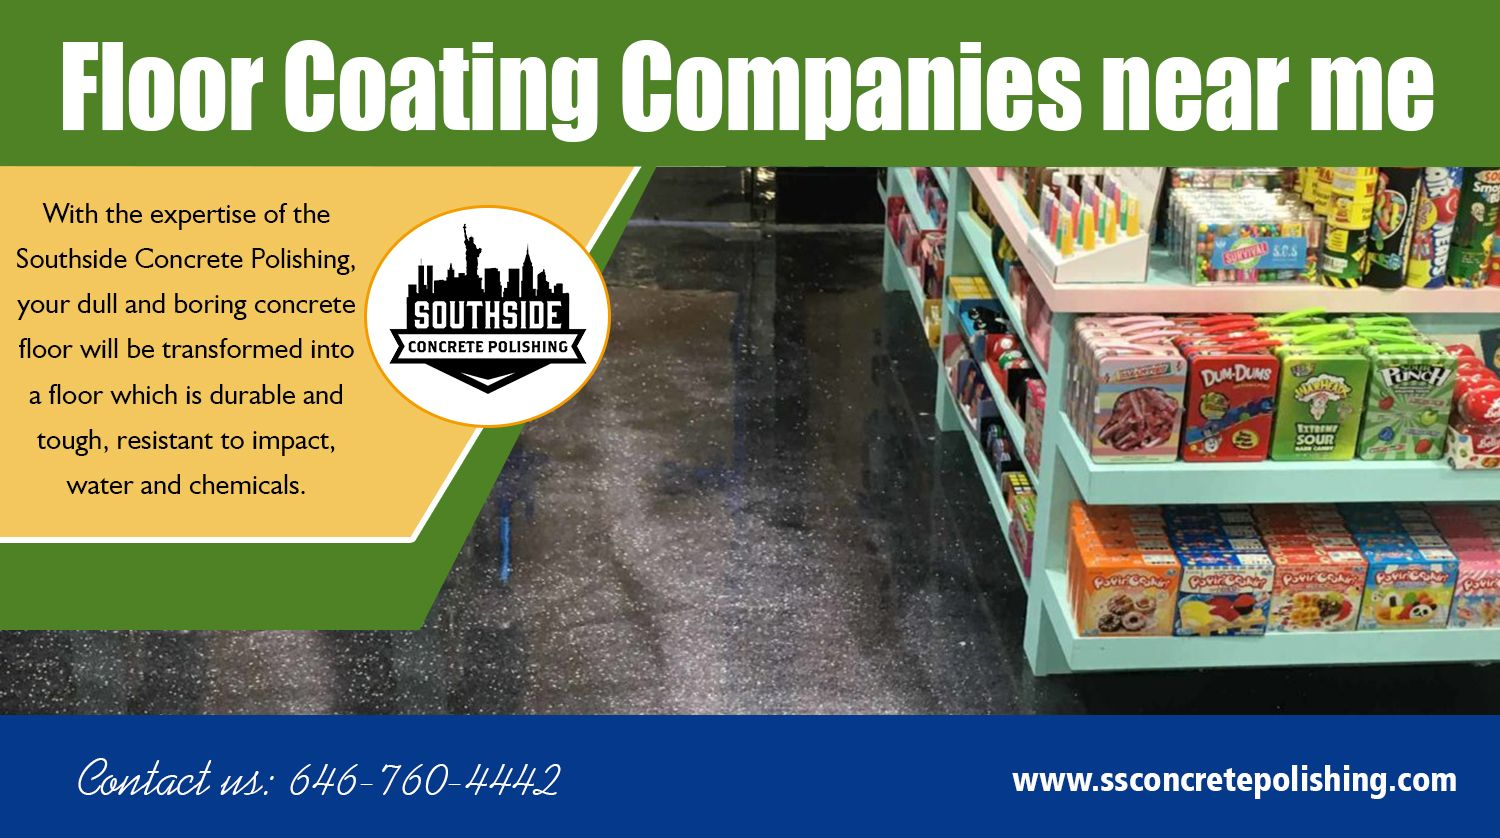 Epoxy floor coating companies near me have over many years